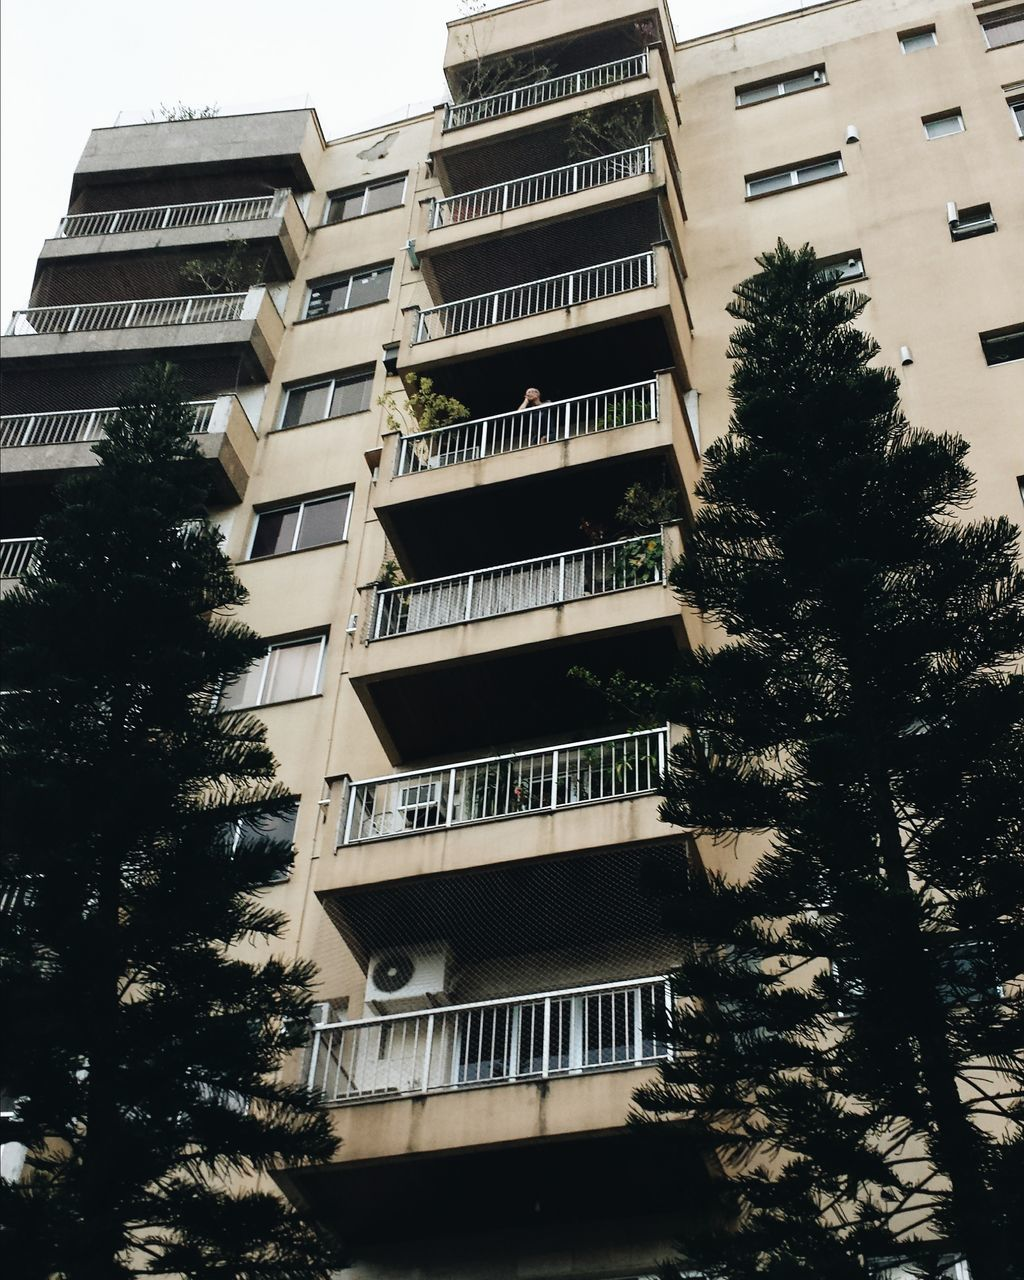 architecture, growth, window, tree, city, modern, building exterior, apartment, skyscraper, no people, residential, day